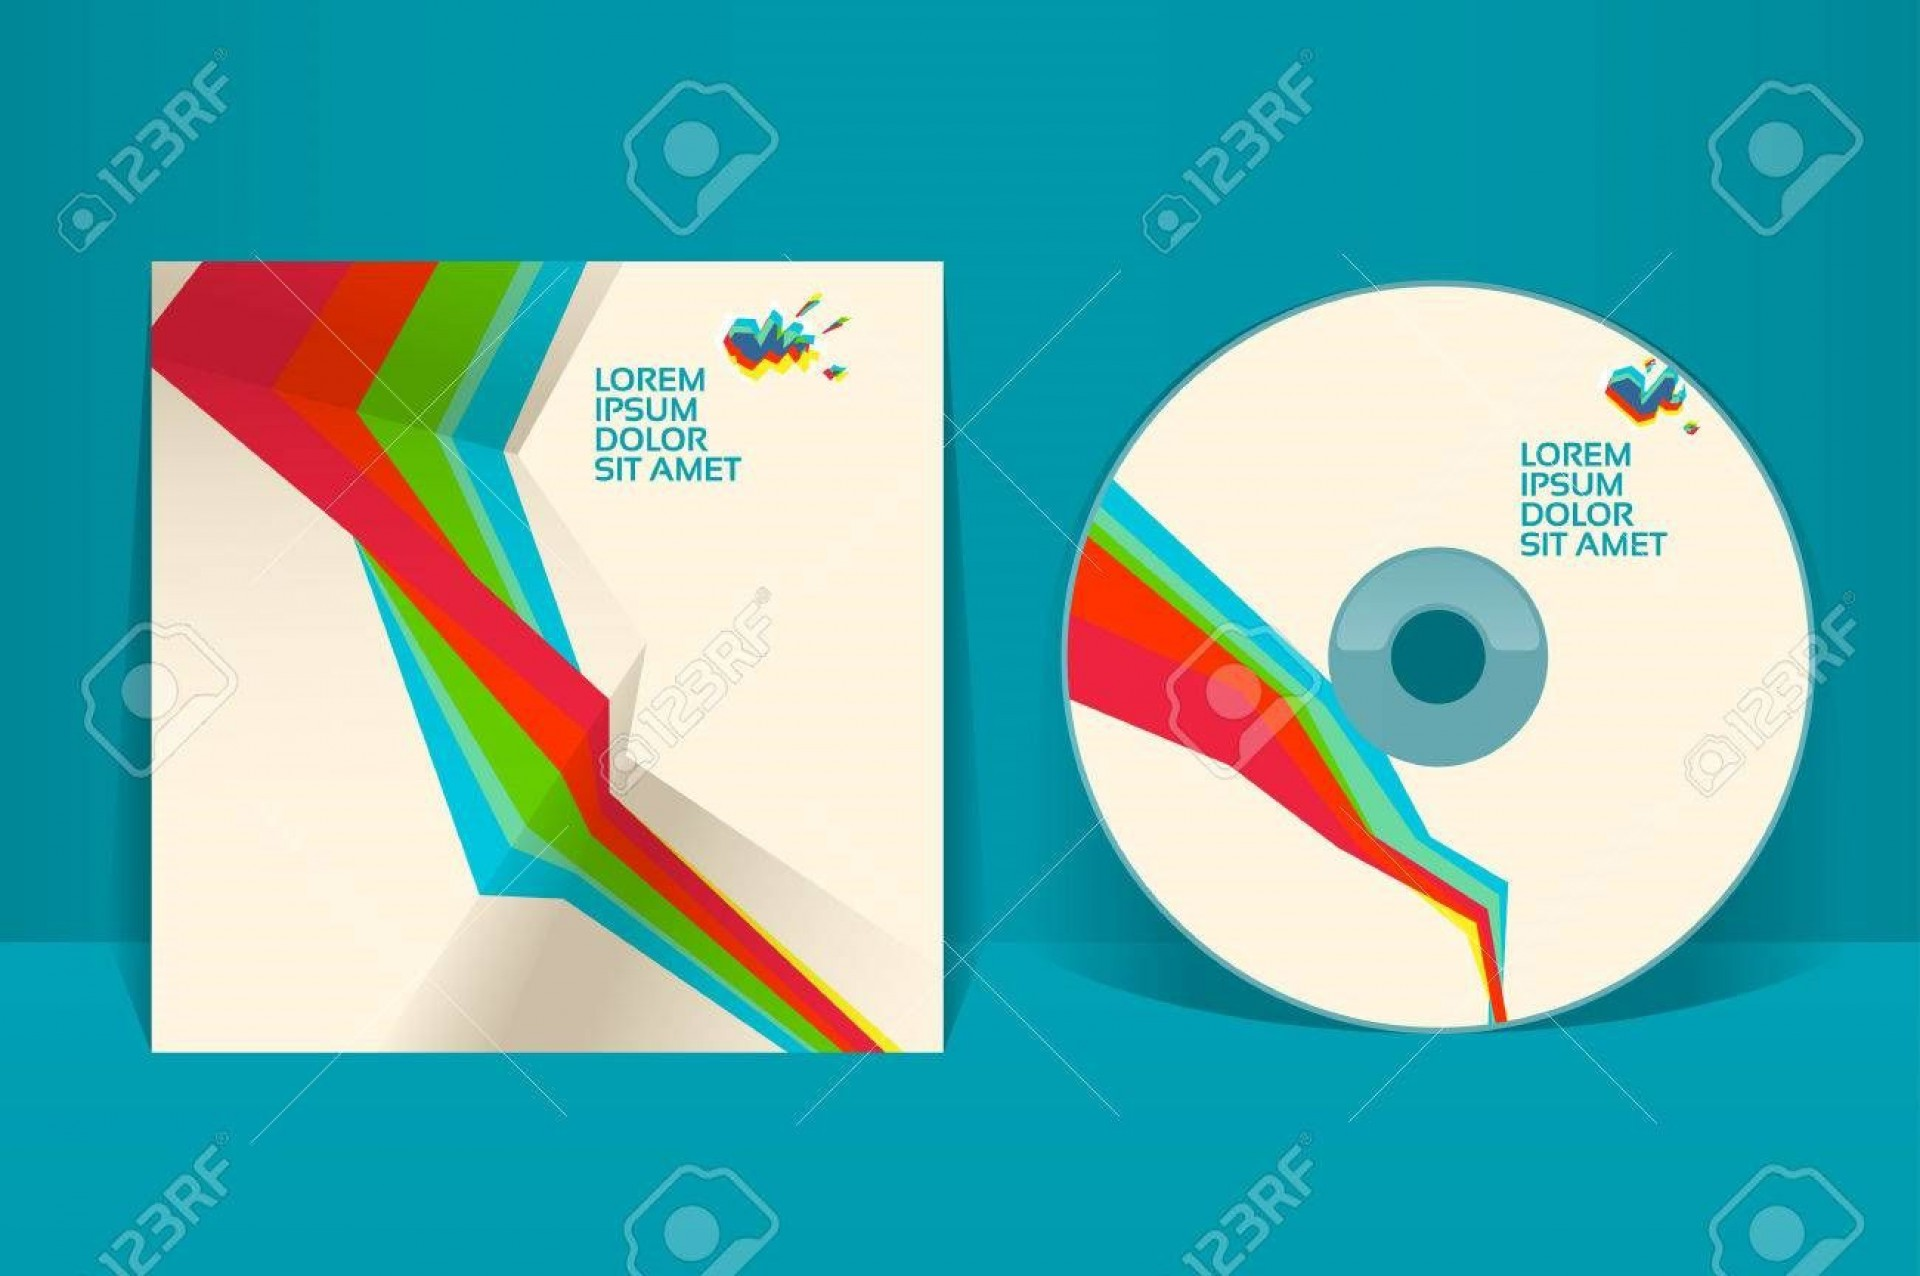 001 Striking Cd Cover Design Template High Resolution  Free Vector Illustration Word Psd Download1920